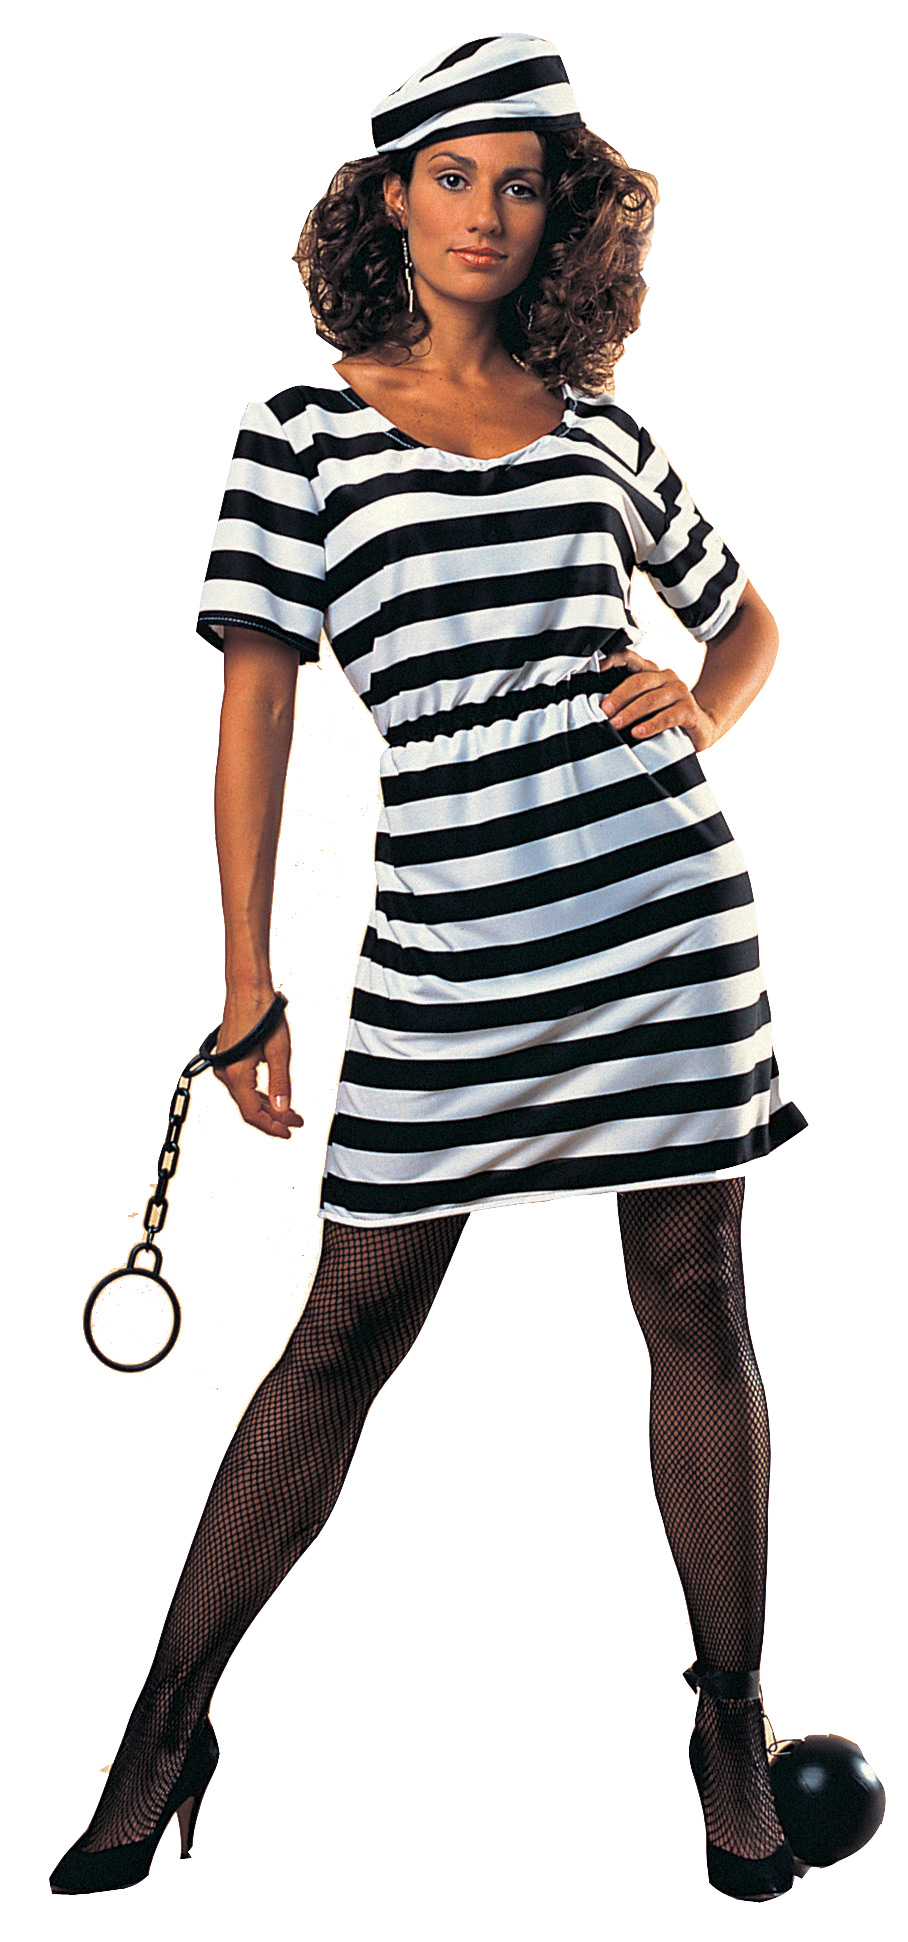 Shop for your Convict Adult Costume 117 at Buycostumes.com - the web's...